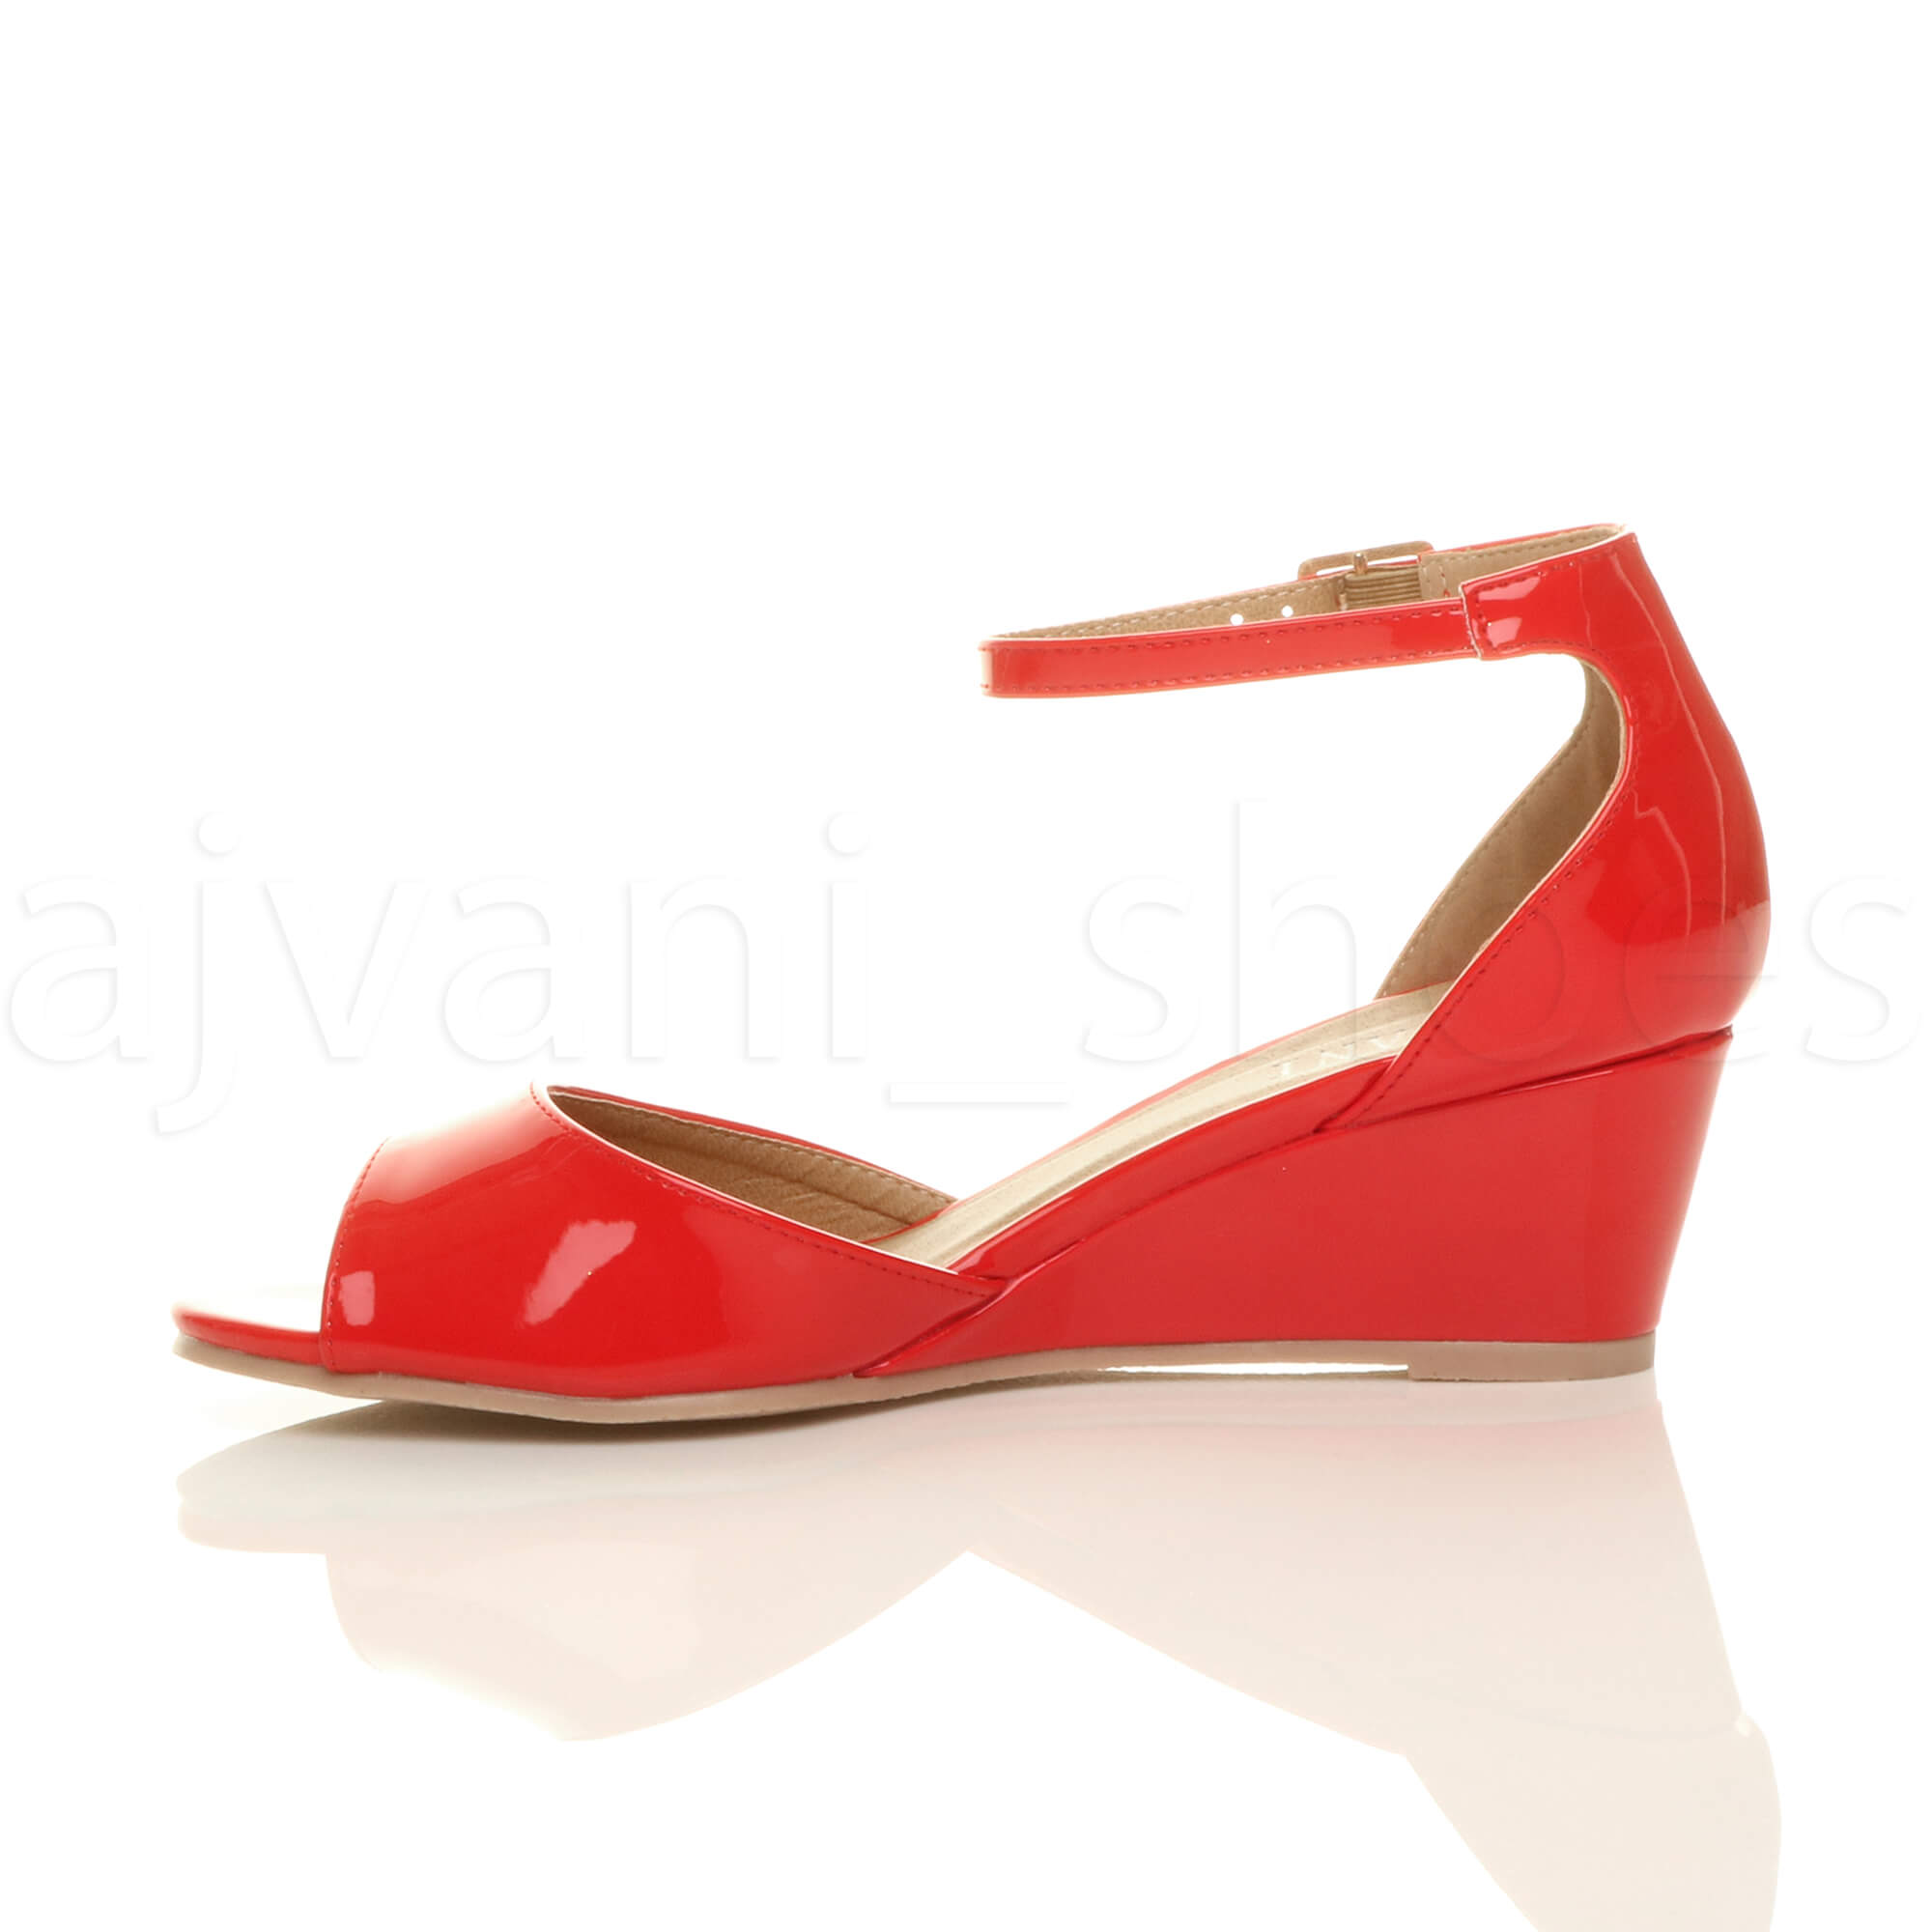 WOMENS-LADIES-LOW-MID-WEDGE-HEEL-ANKLE-STRAP-SMART-CASUAL-EVENING-SANDALS-SIZE thumbnail 116